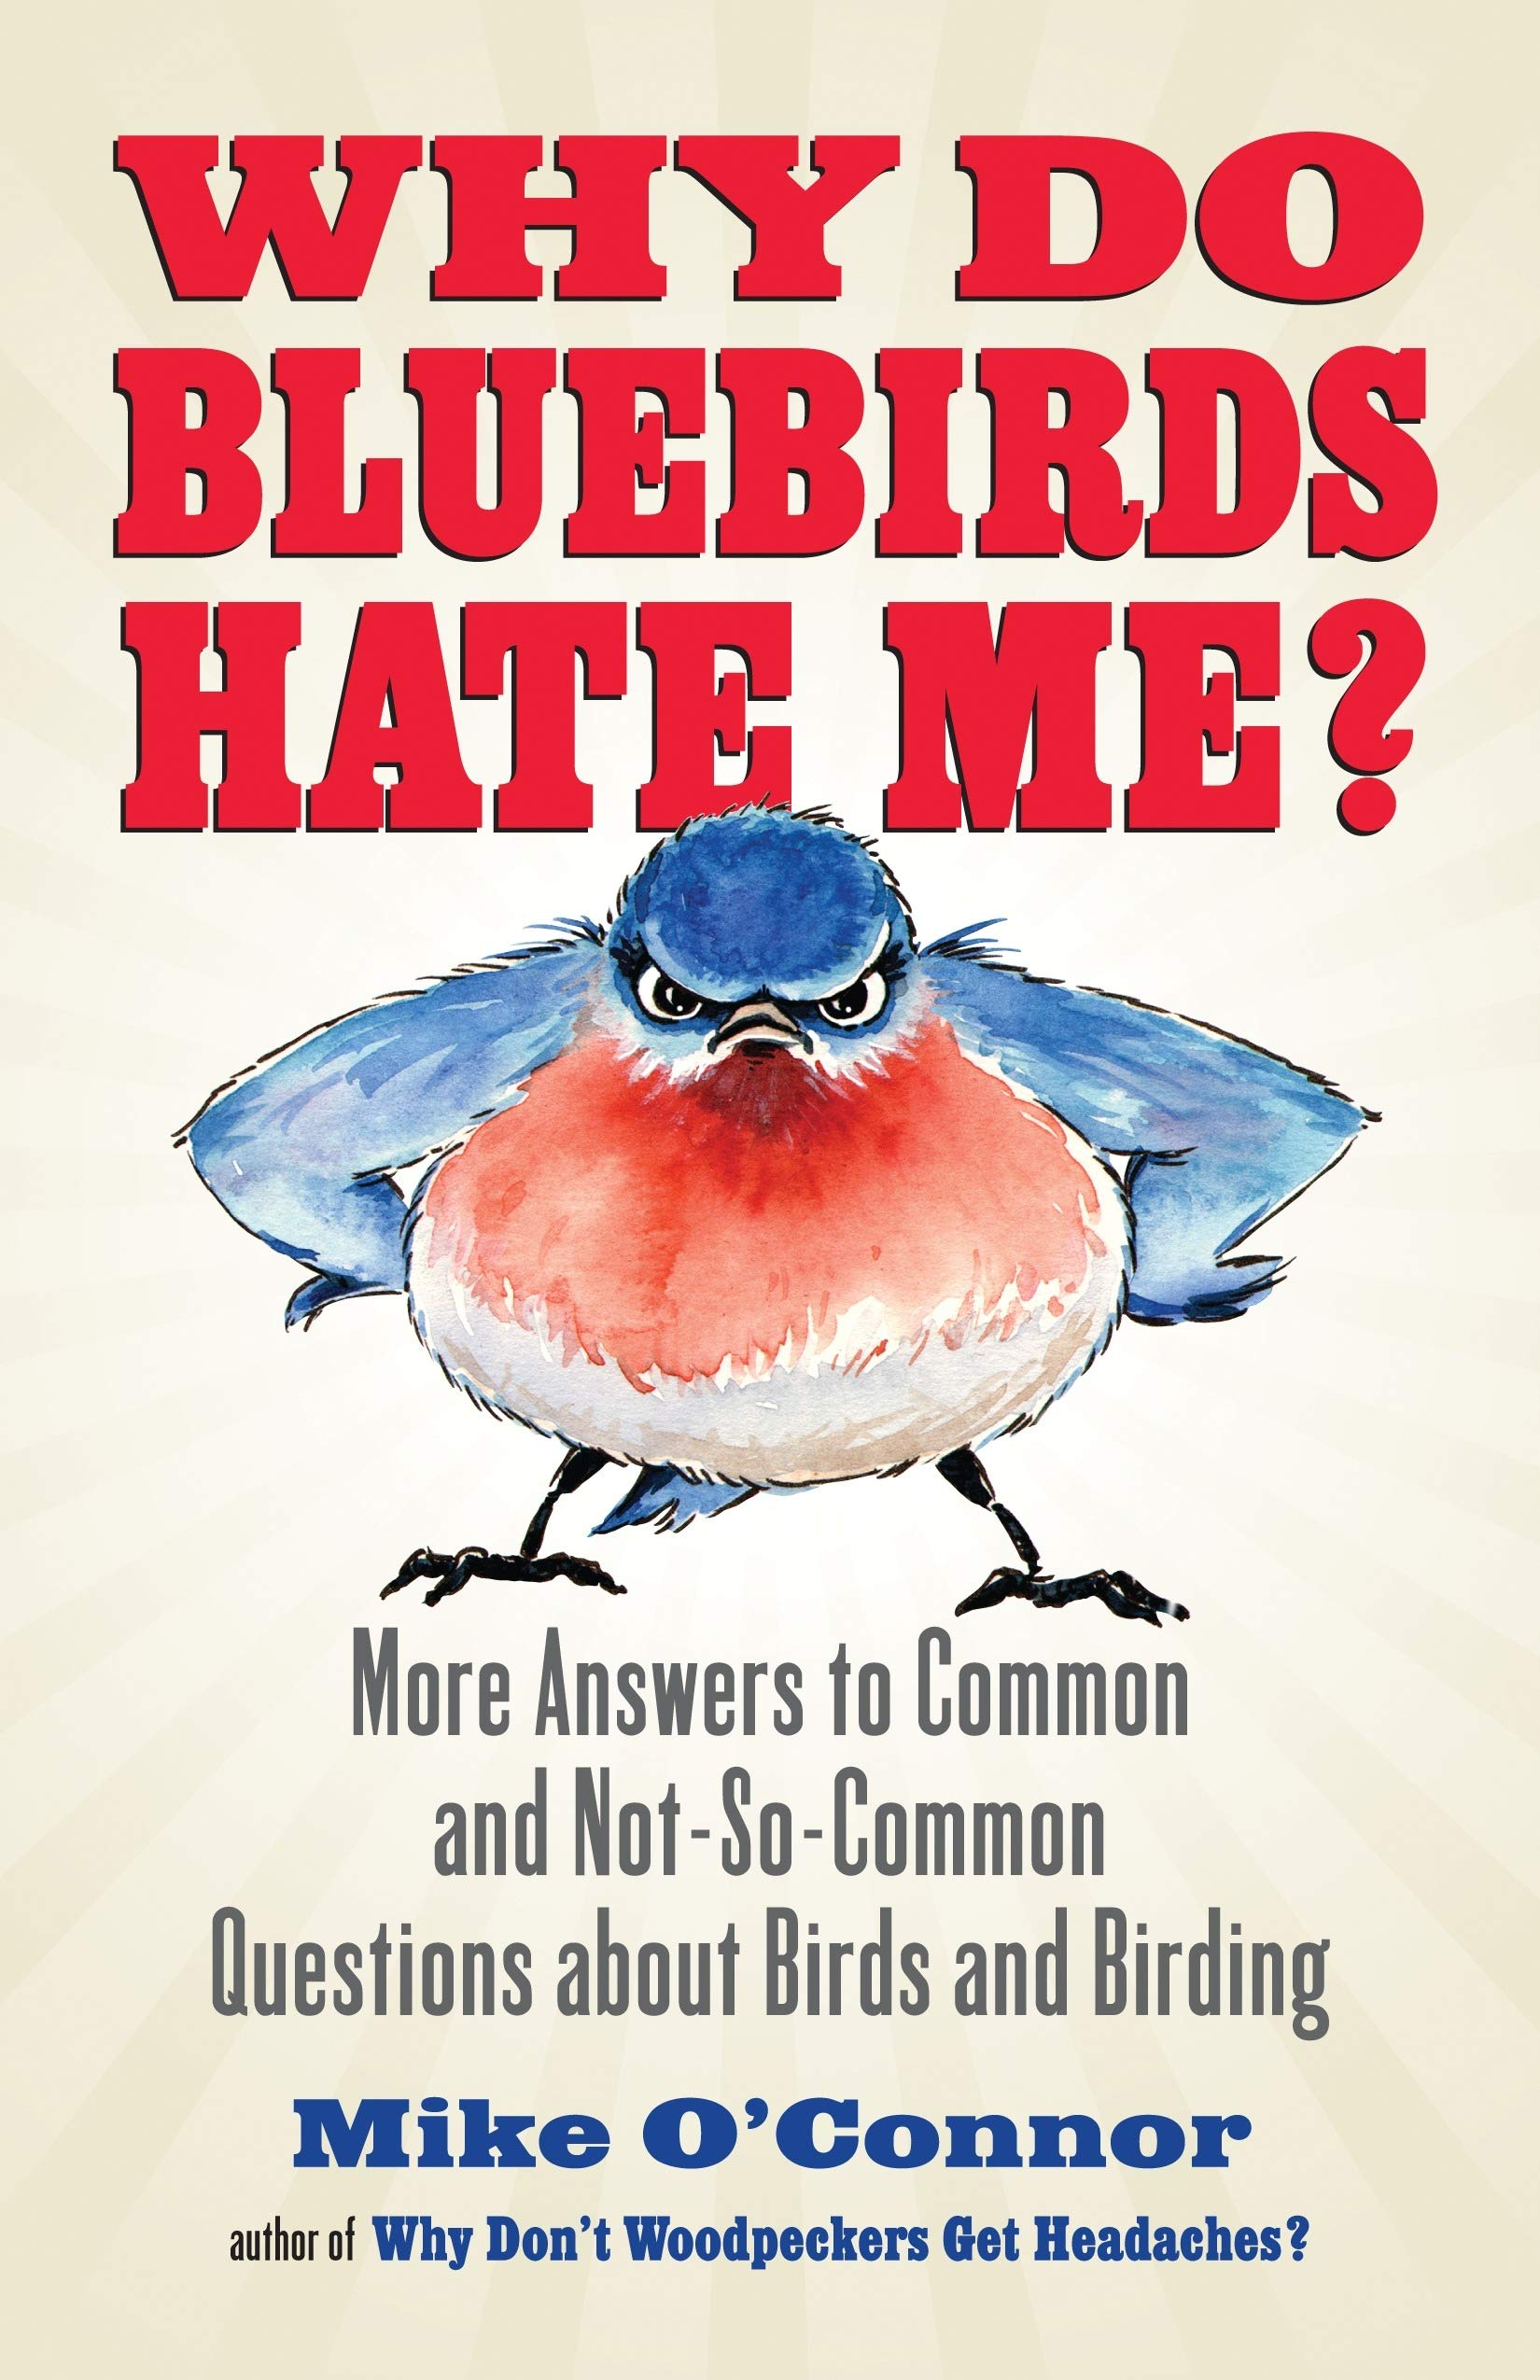 More Answers to Common and Not-So-Common Questions about Birds and Birding:  Mike O'Connor: 9780807012536: Amazon.com: Books